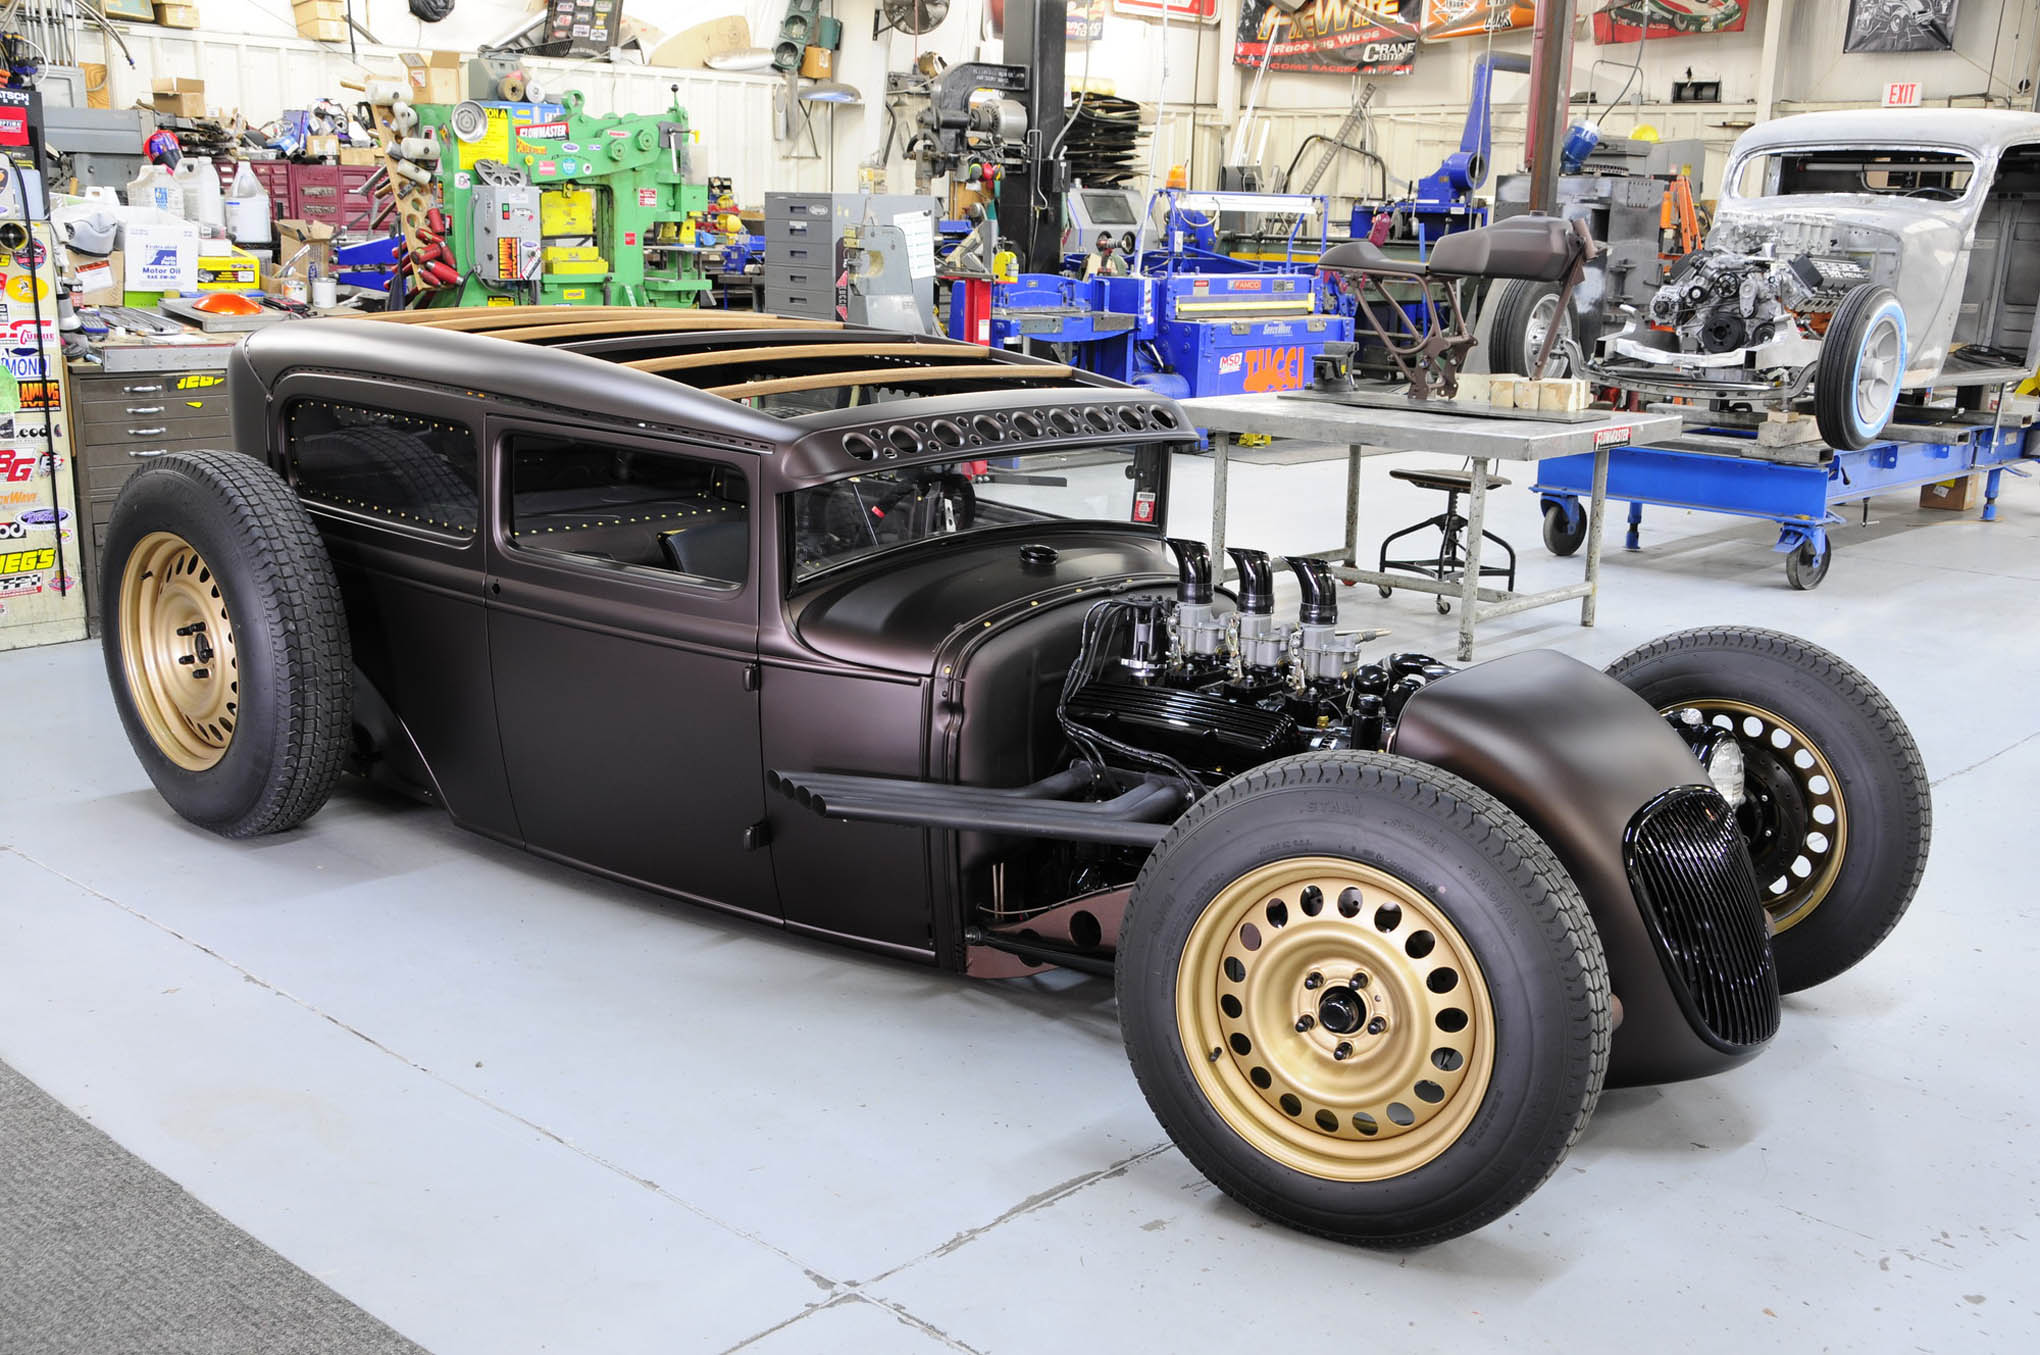 Recently completed, this 1931 Ford sedan features endless design elements starting with its hammered-to-the-ground stance, complemented by a perfect chop and channel. The Tucci-designed chassis is packed with small-block V-8 power while the body is coated in PPG flat brown.